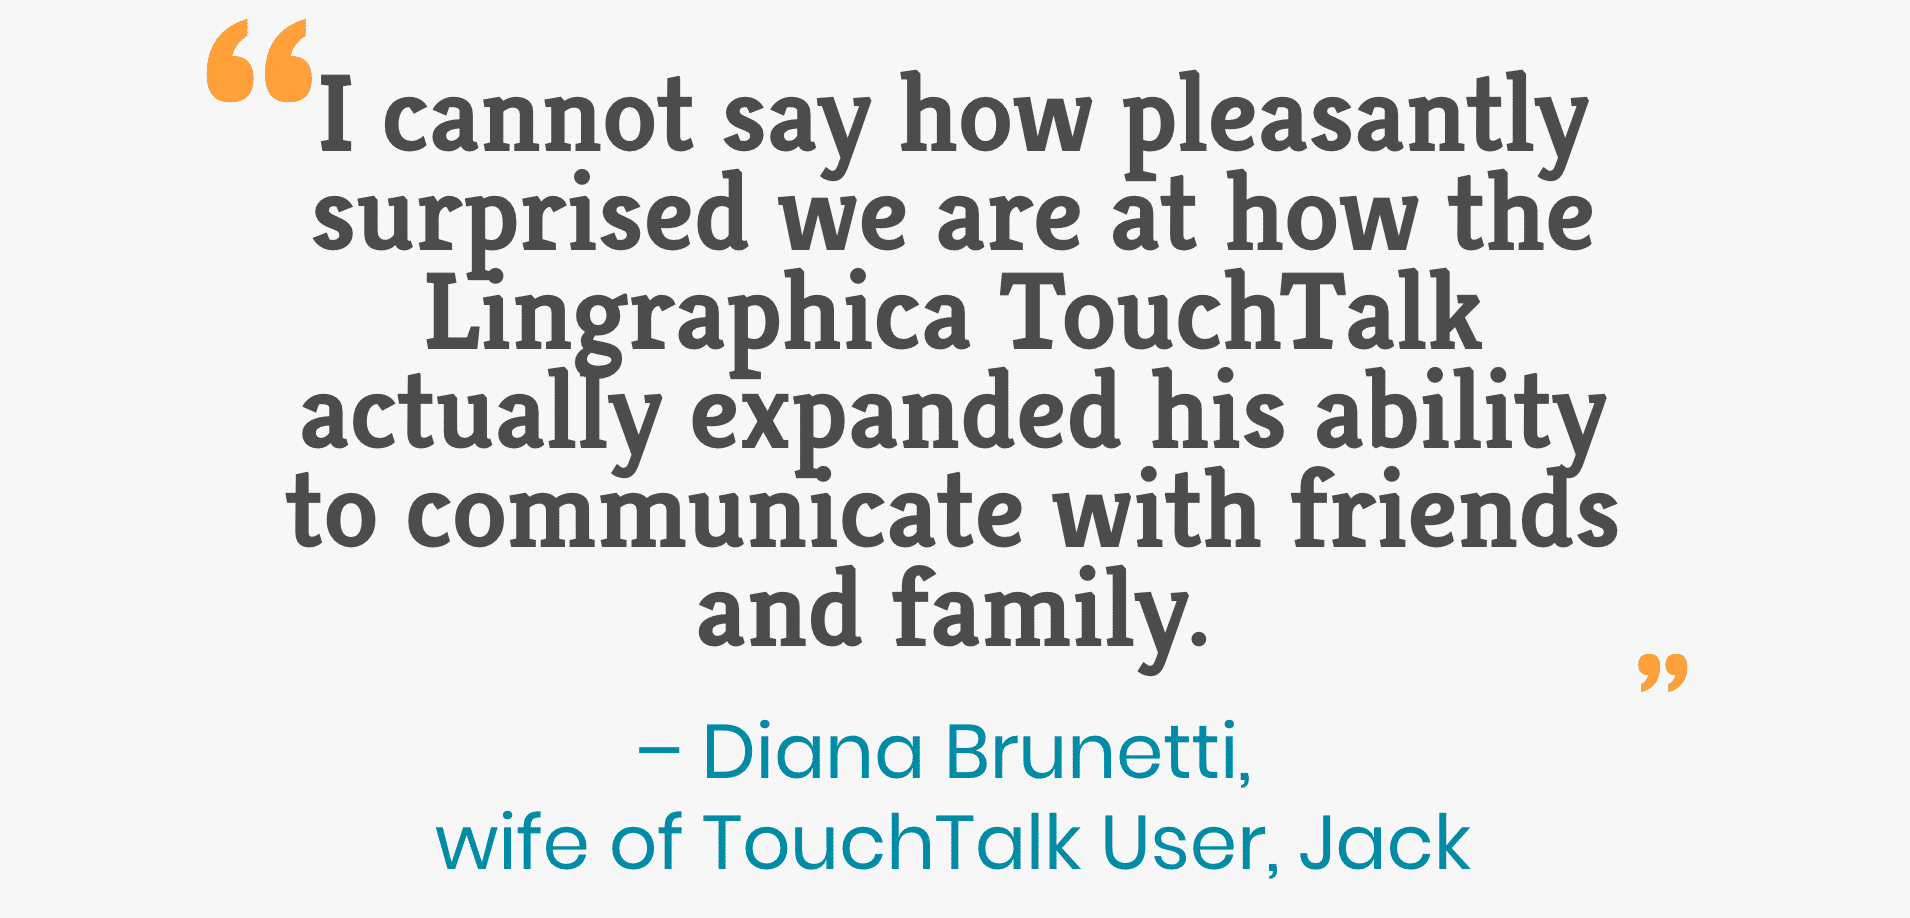 I cannot say how pleasantly surprised we are at how the Lingraphica TouchTalk actually expanded his ability to communicate with friends and family. – Diana Brunetti, wife of TouchTalk User, Jack